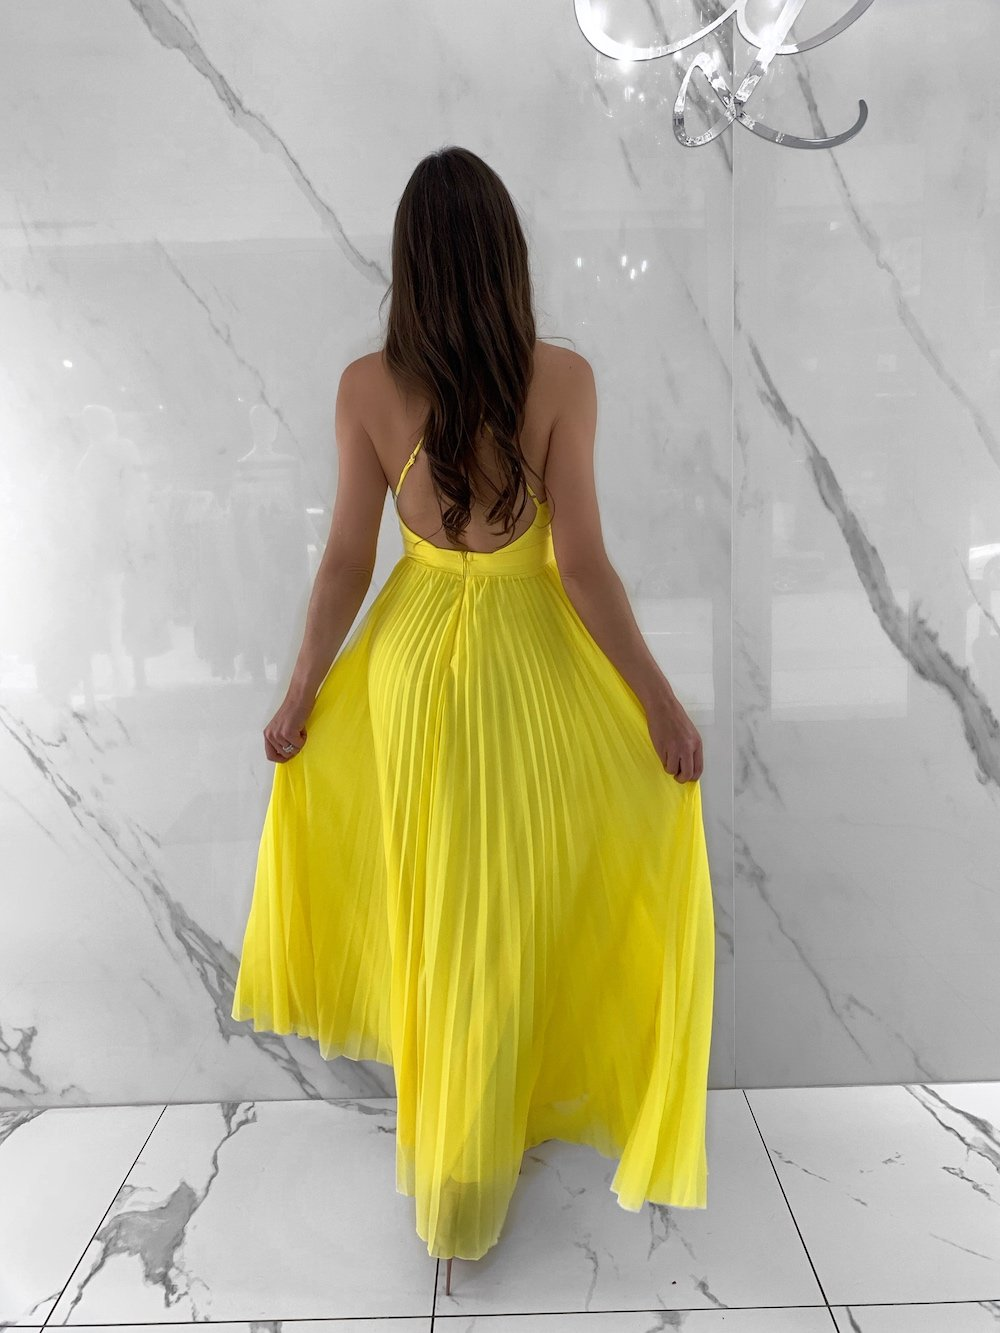 Ginny Dress, Women's Yellow Dresses